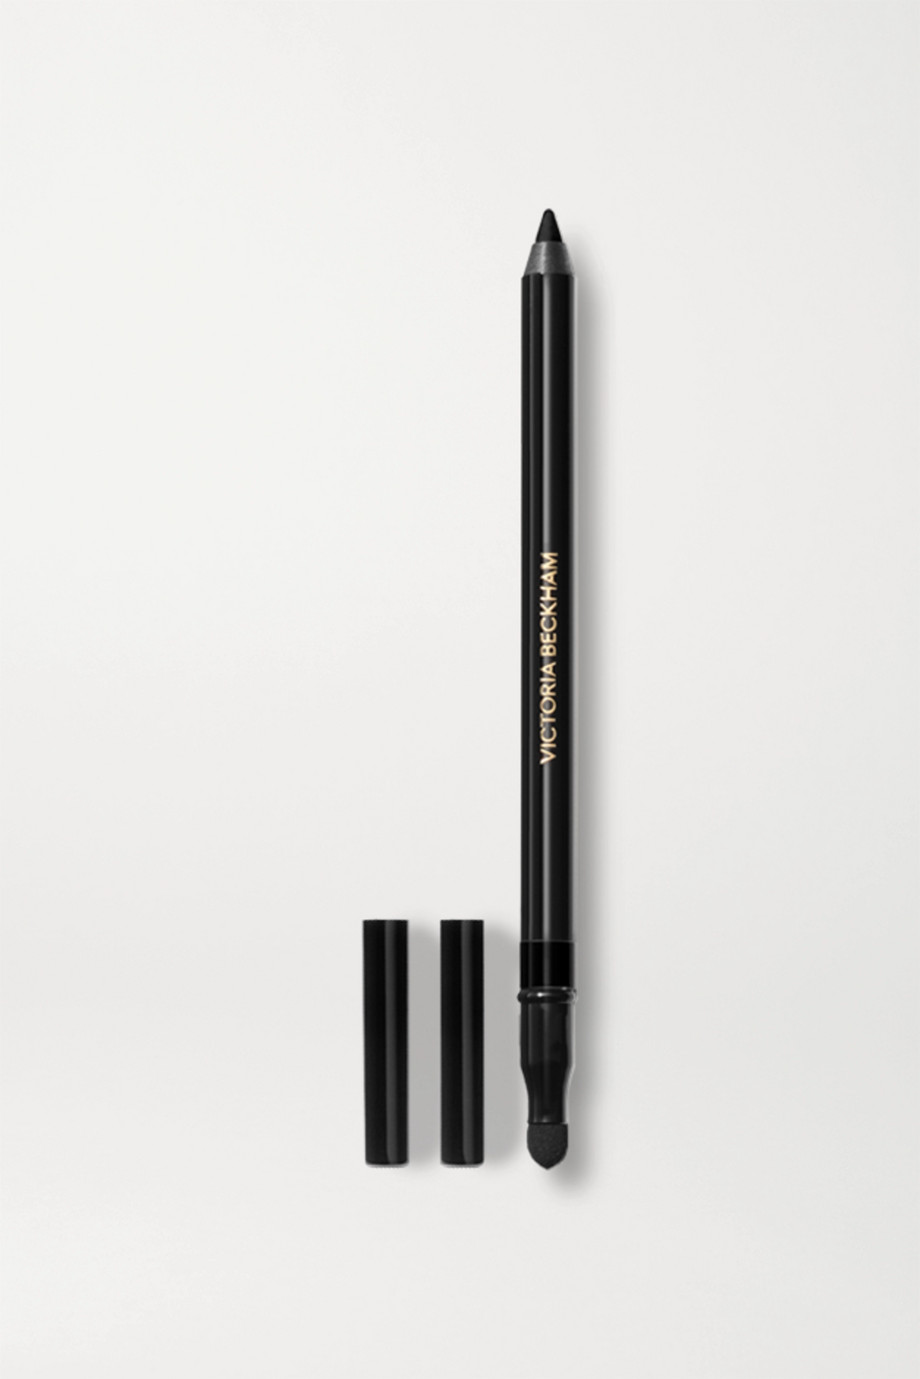 Victoria Beckham Beauty Eye-liner Satin Kajal, Black